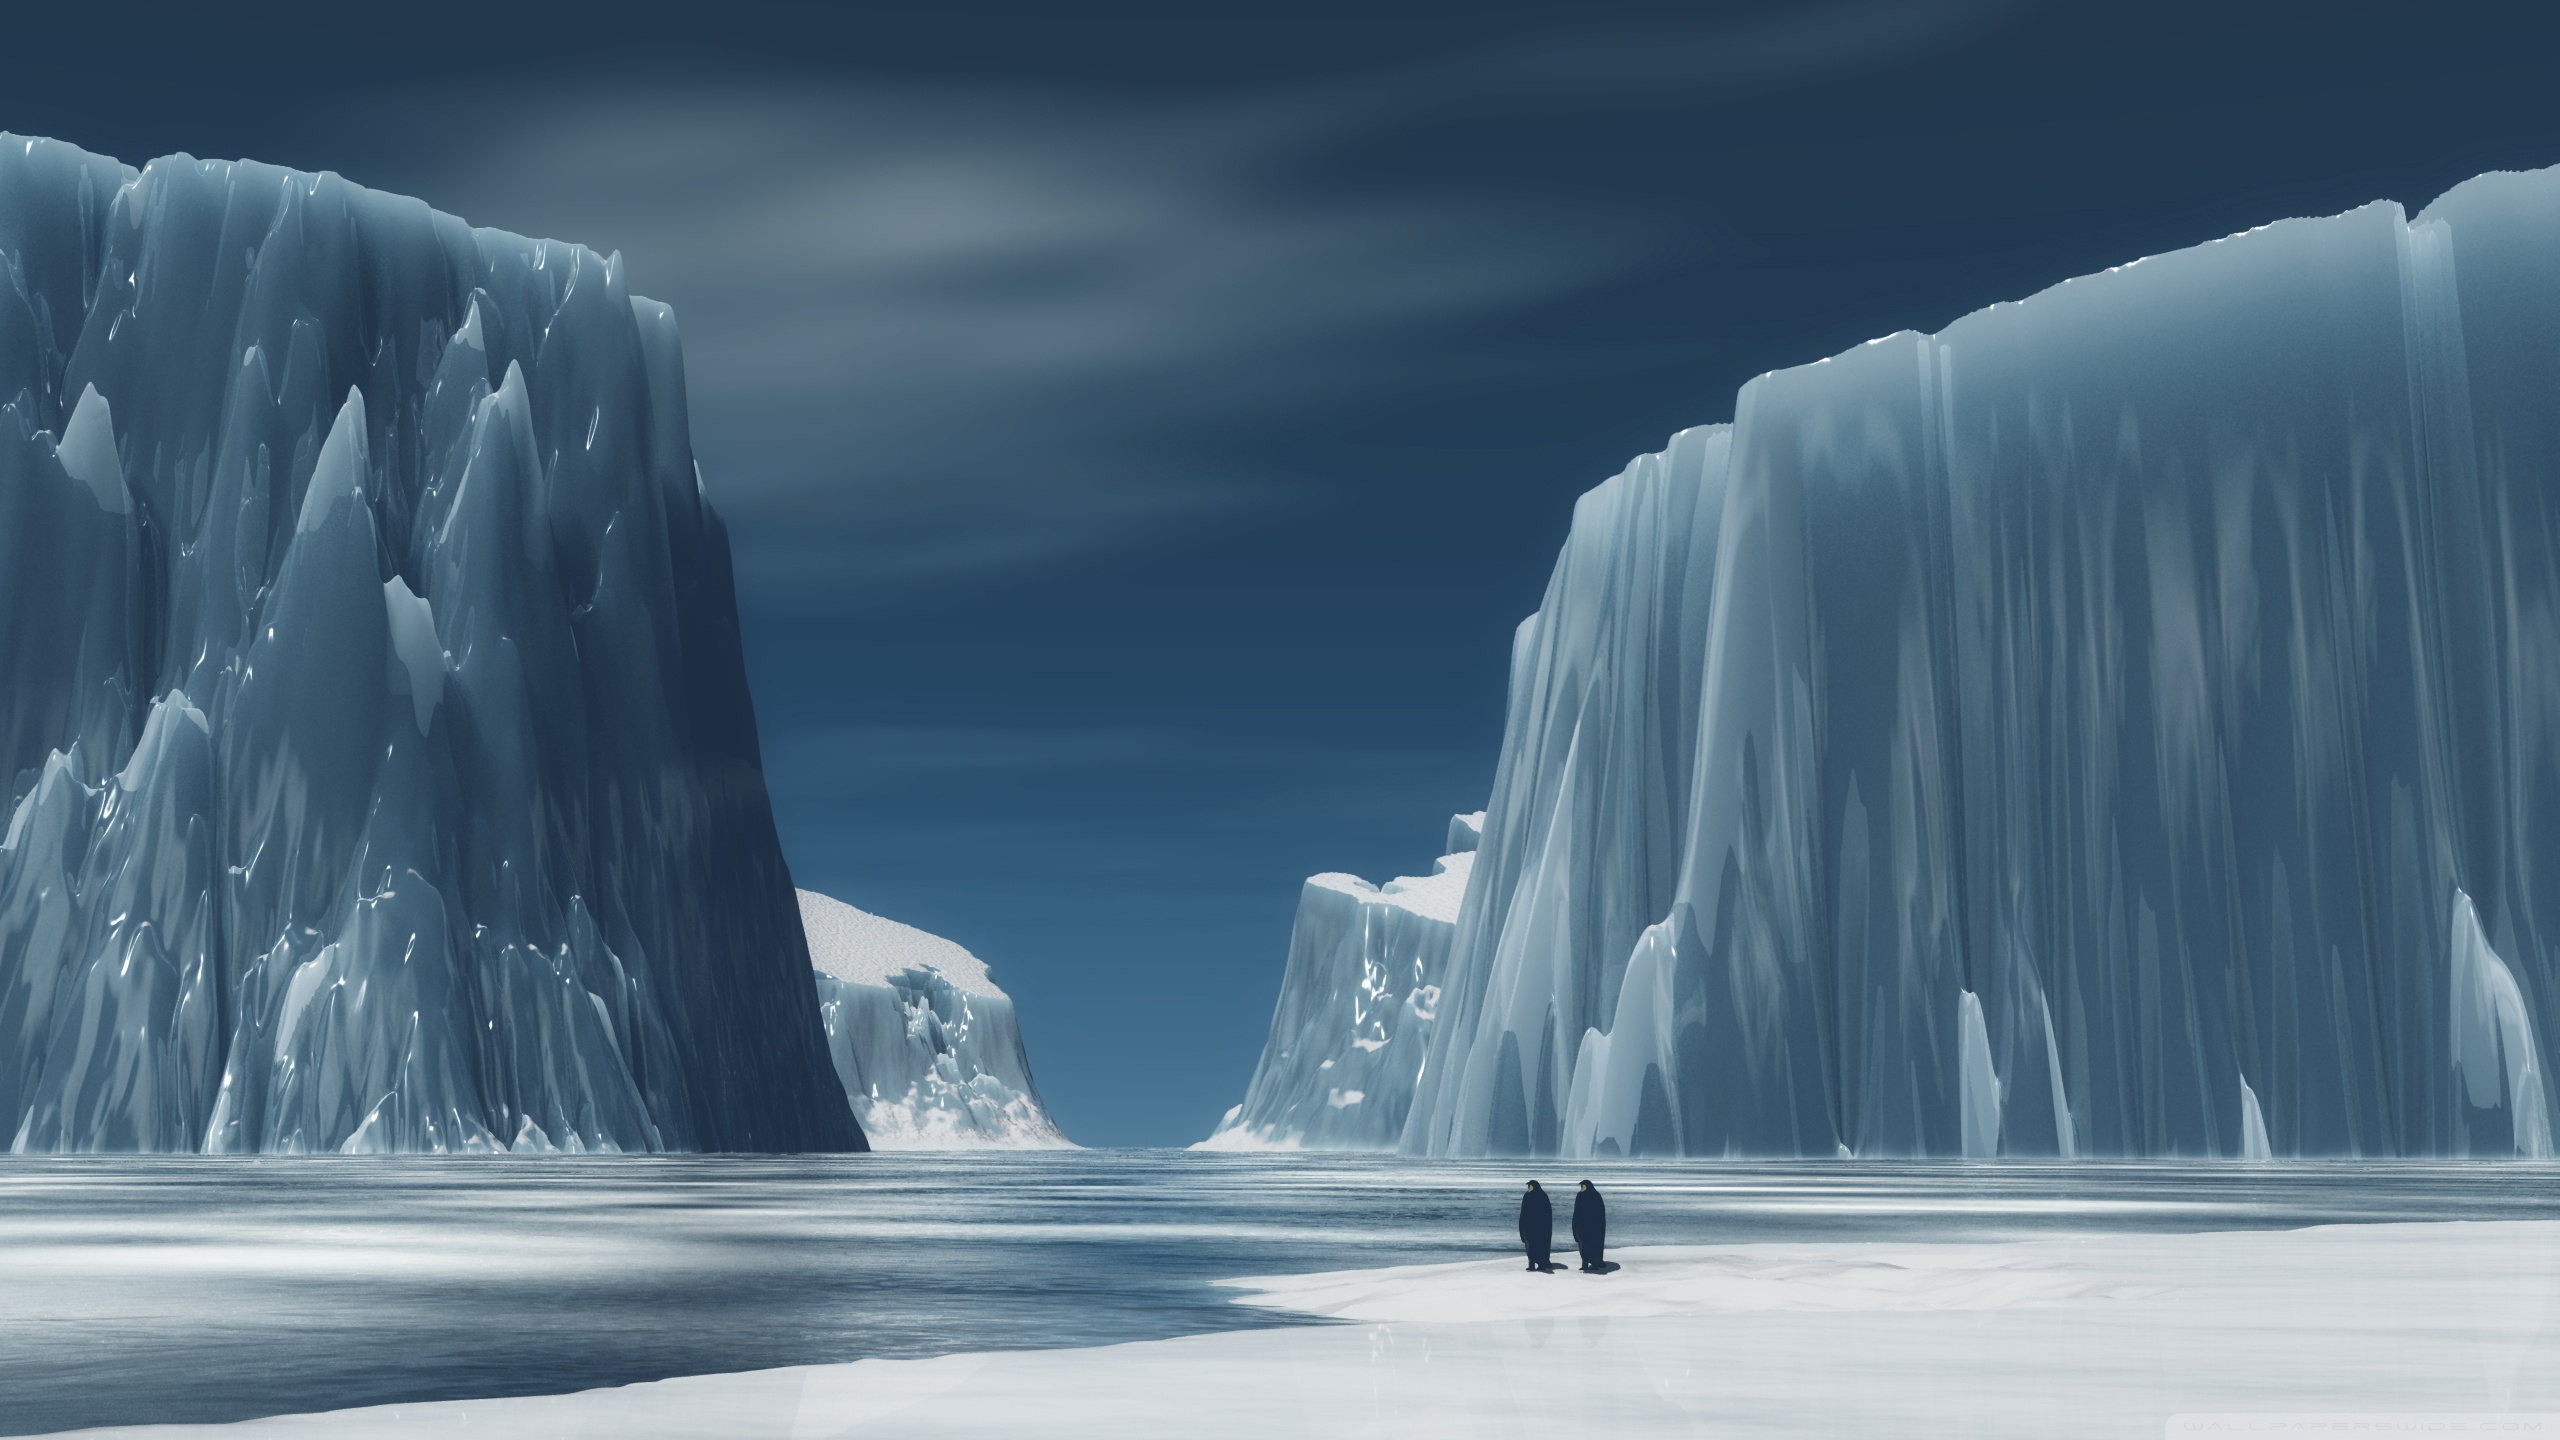 Antarctica Wallpaper for Desktop 2560x1440